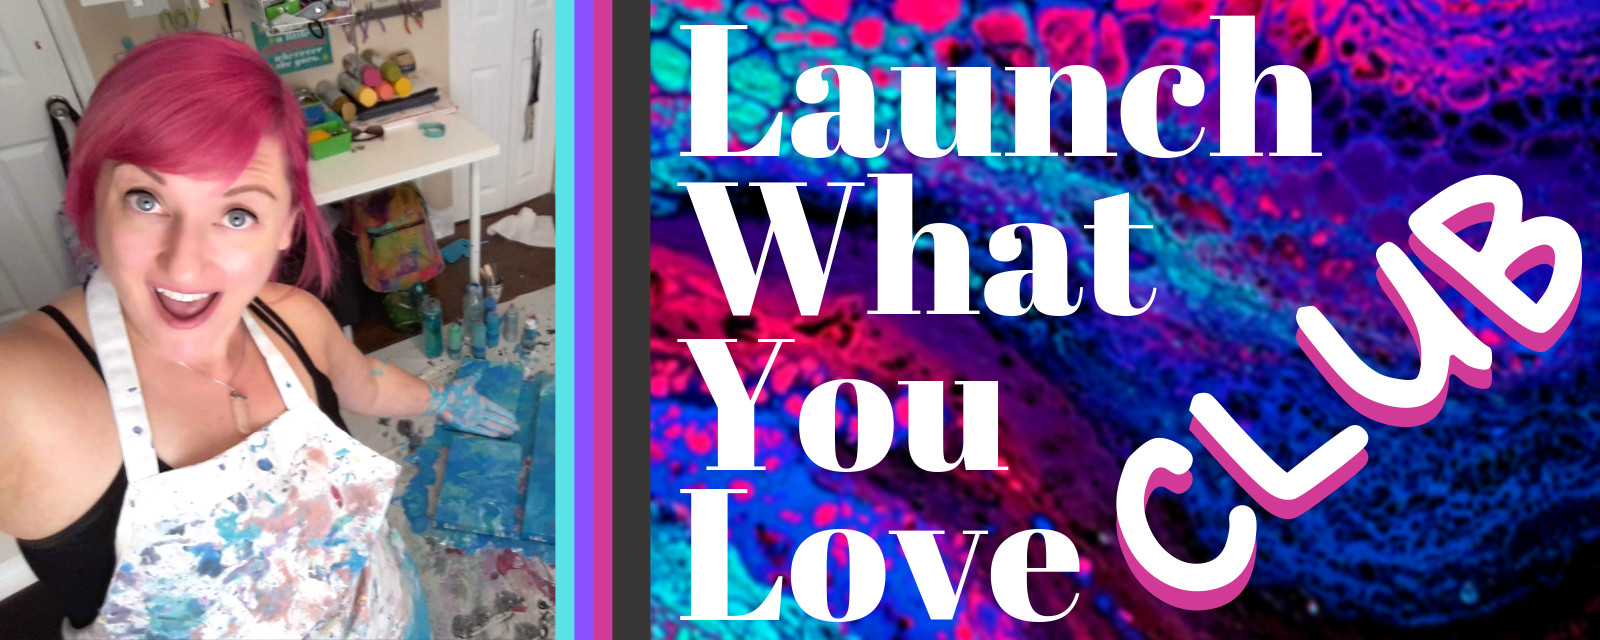 Copy of Launch What You Love.png